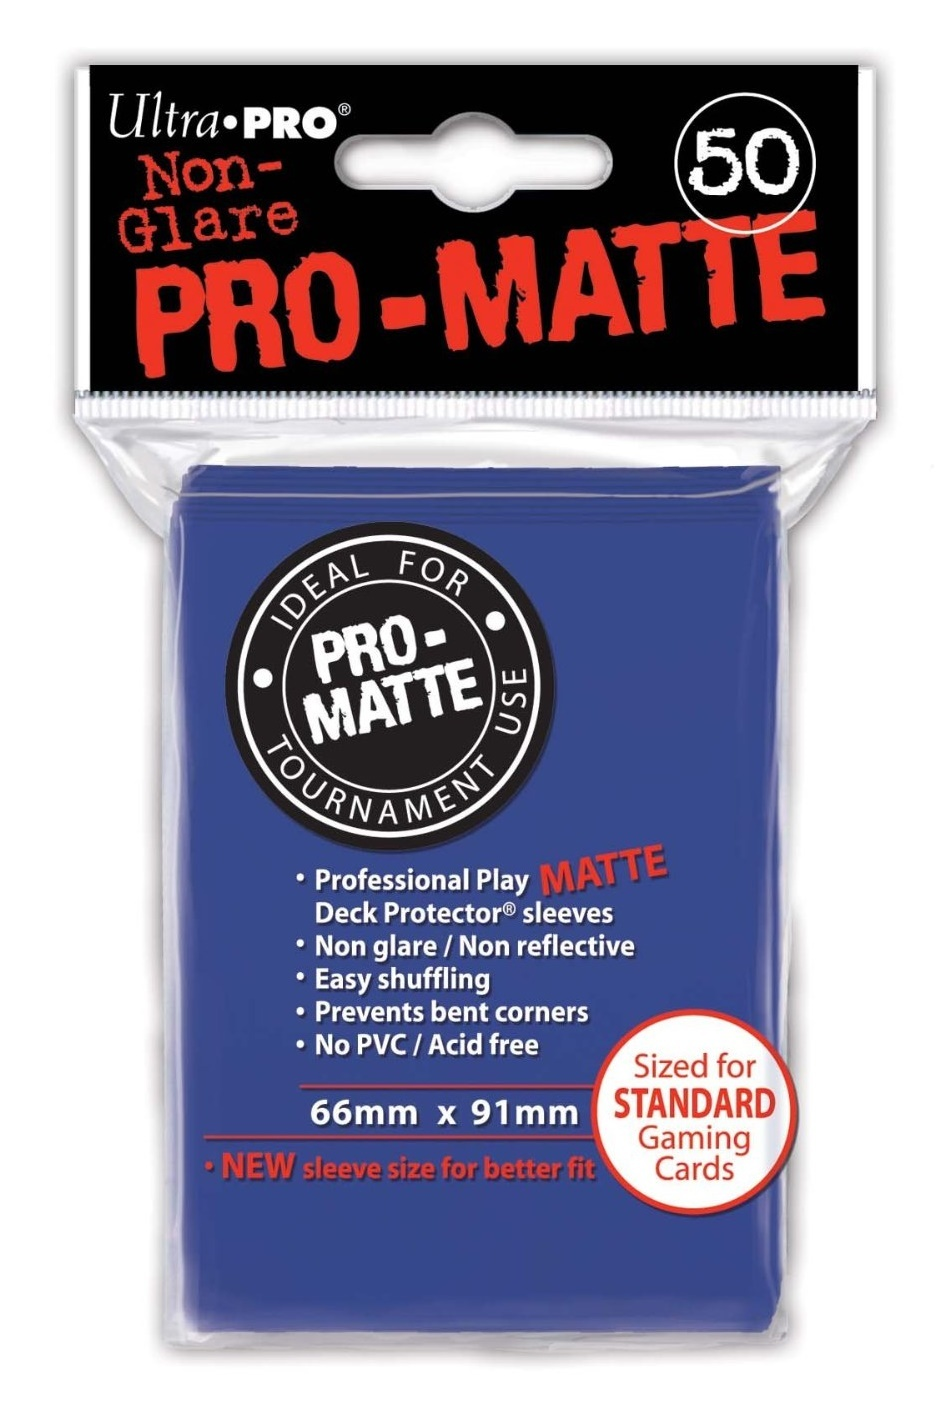 Ultra Pro: Pro-Matte Deck Protector Sleeves - Blue image